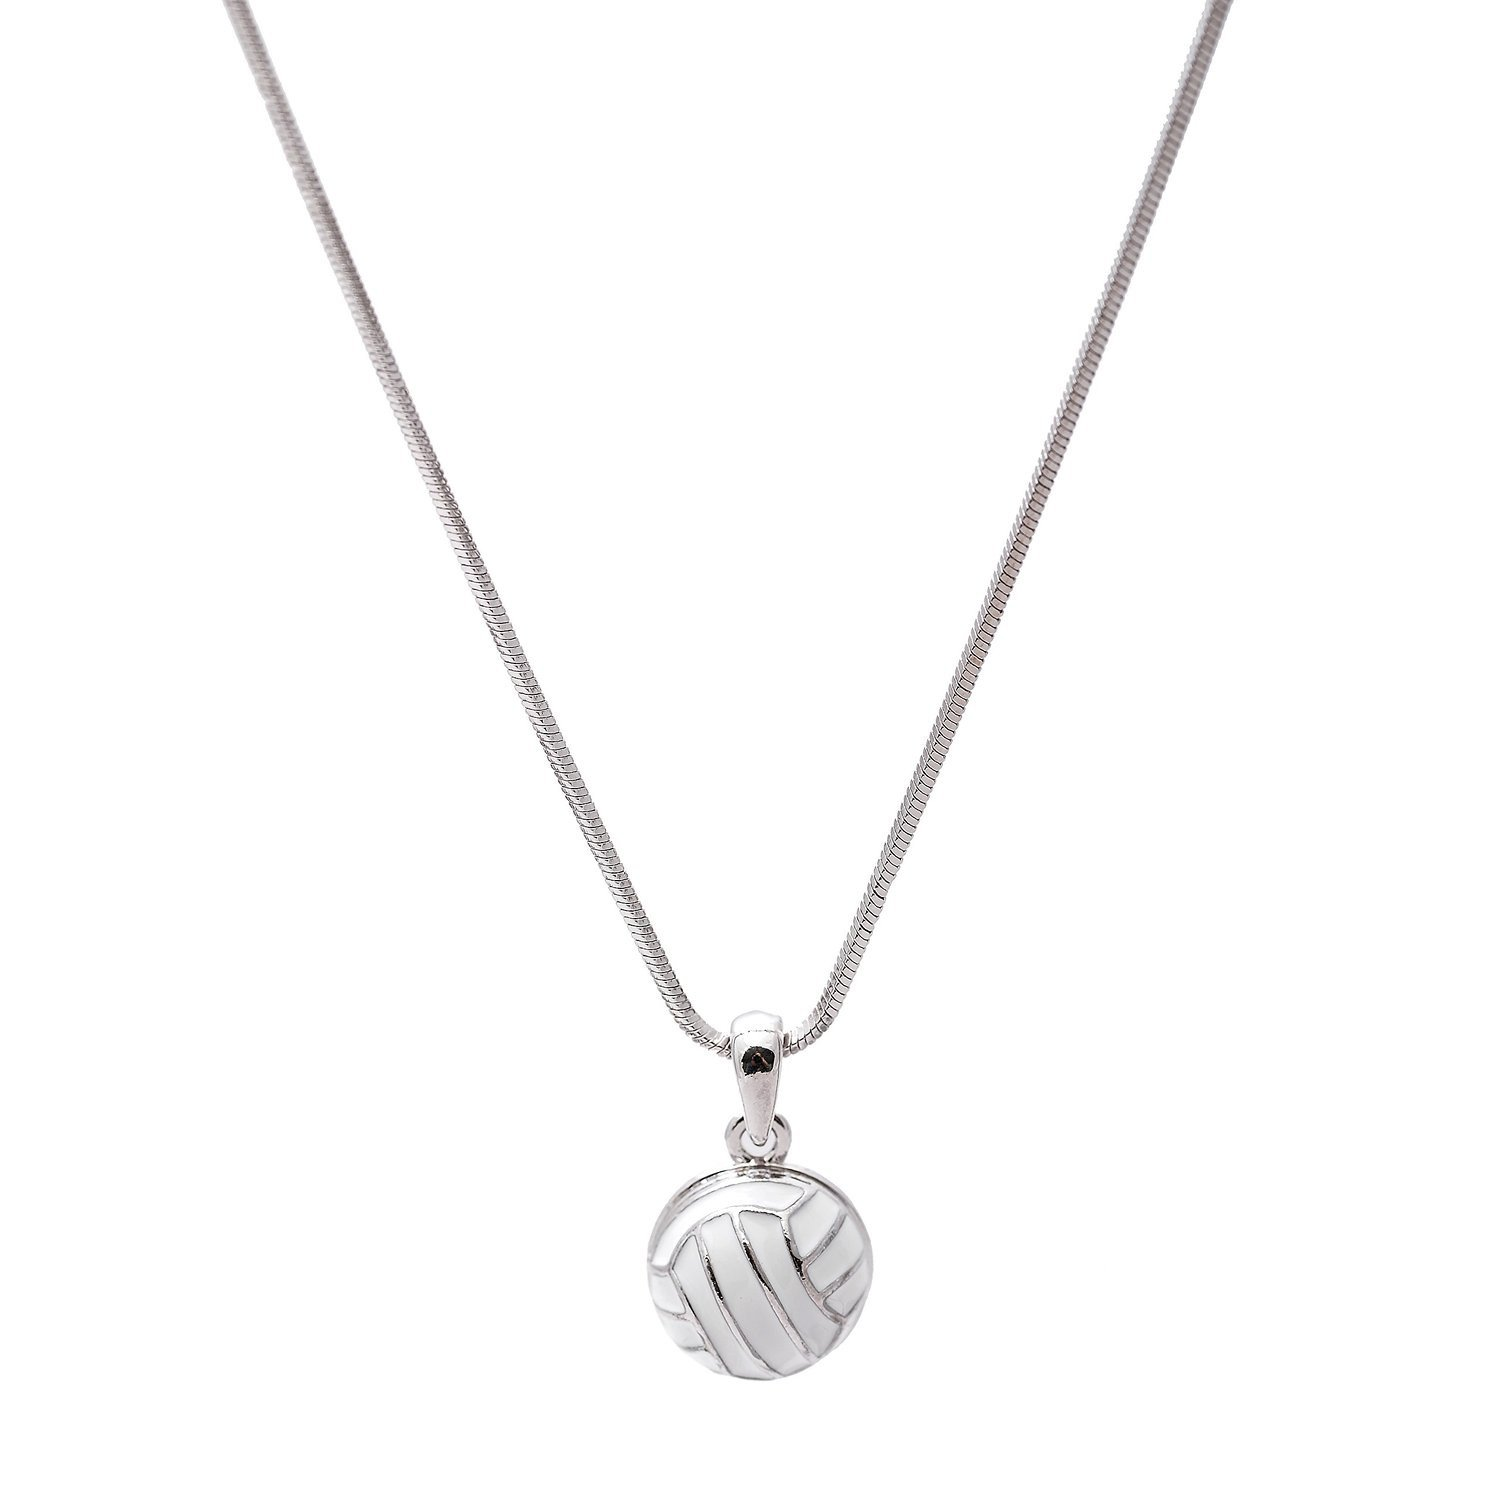 Jumping Strike Crystal Volleyball Necklace With Images Volleyball Necklace Volleyball Jewelry Volleyball Accessories